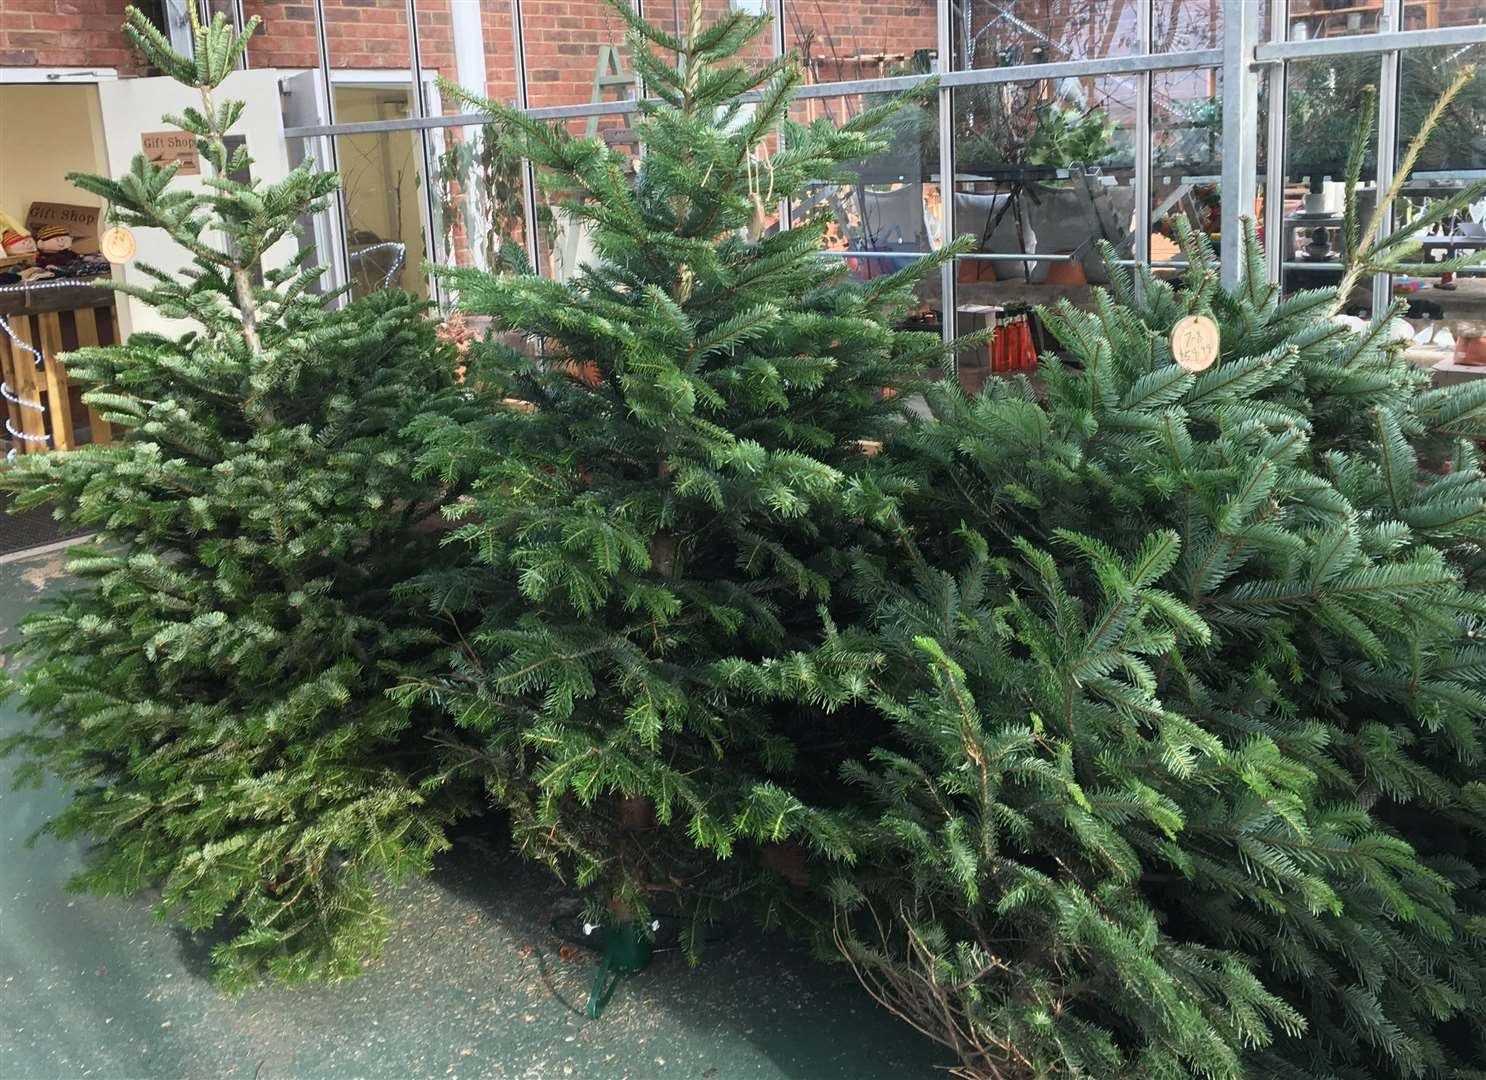 The garden centre has stopped selling its Christmas trees in plastic netting (5800031)